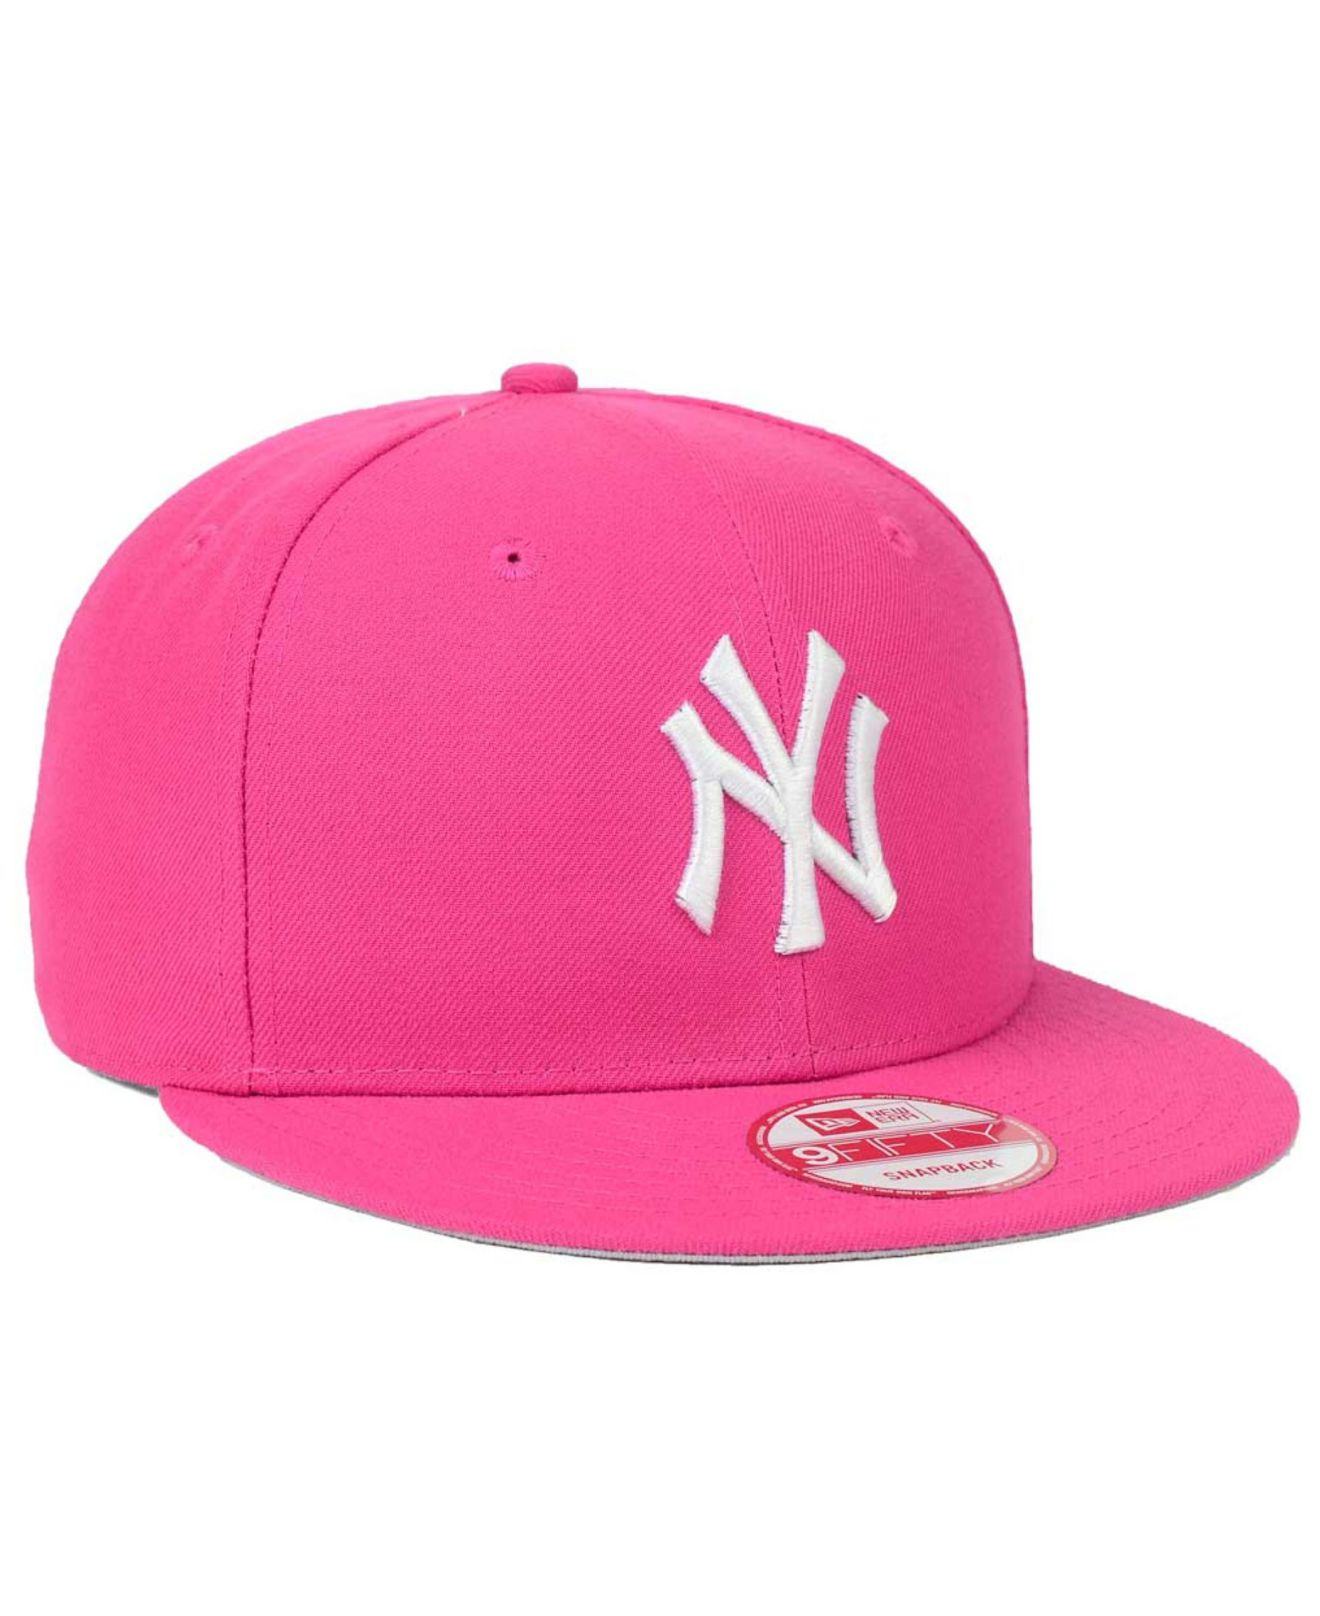 28fd59b86 ... hat d7415 where can i buy lyst ktz new york yankees c dub 9fifty  snapback cap in pink ...